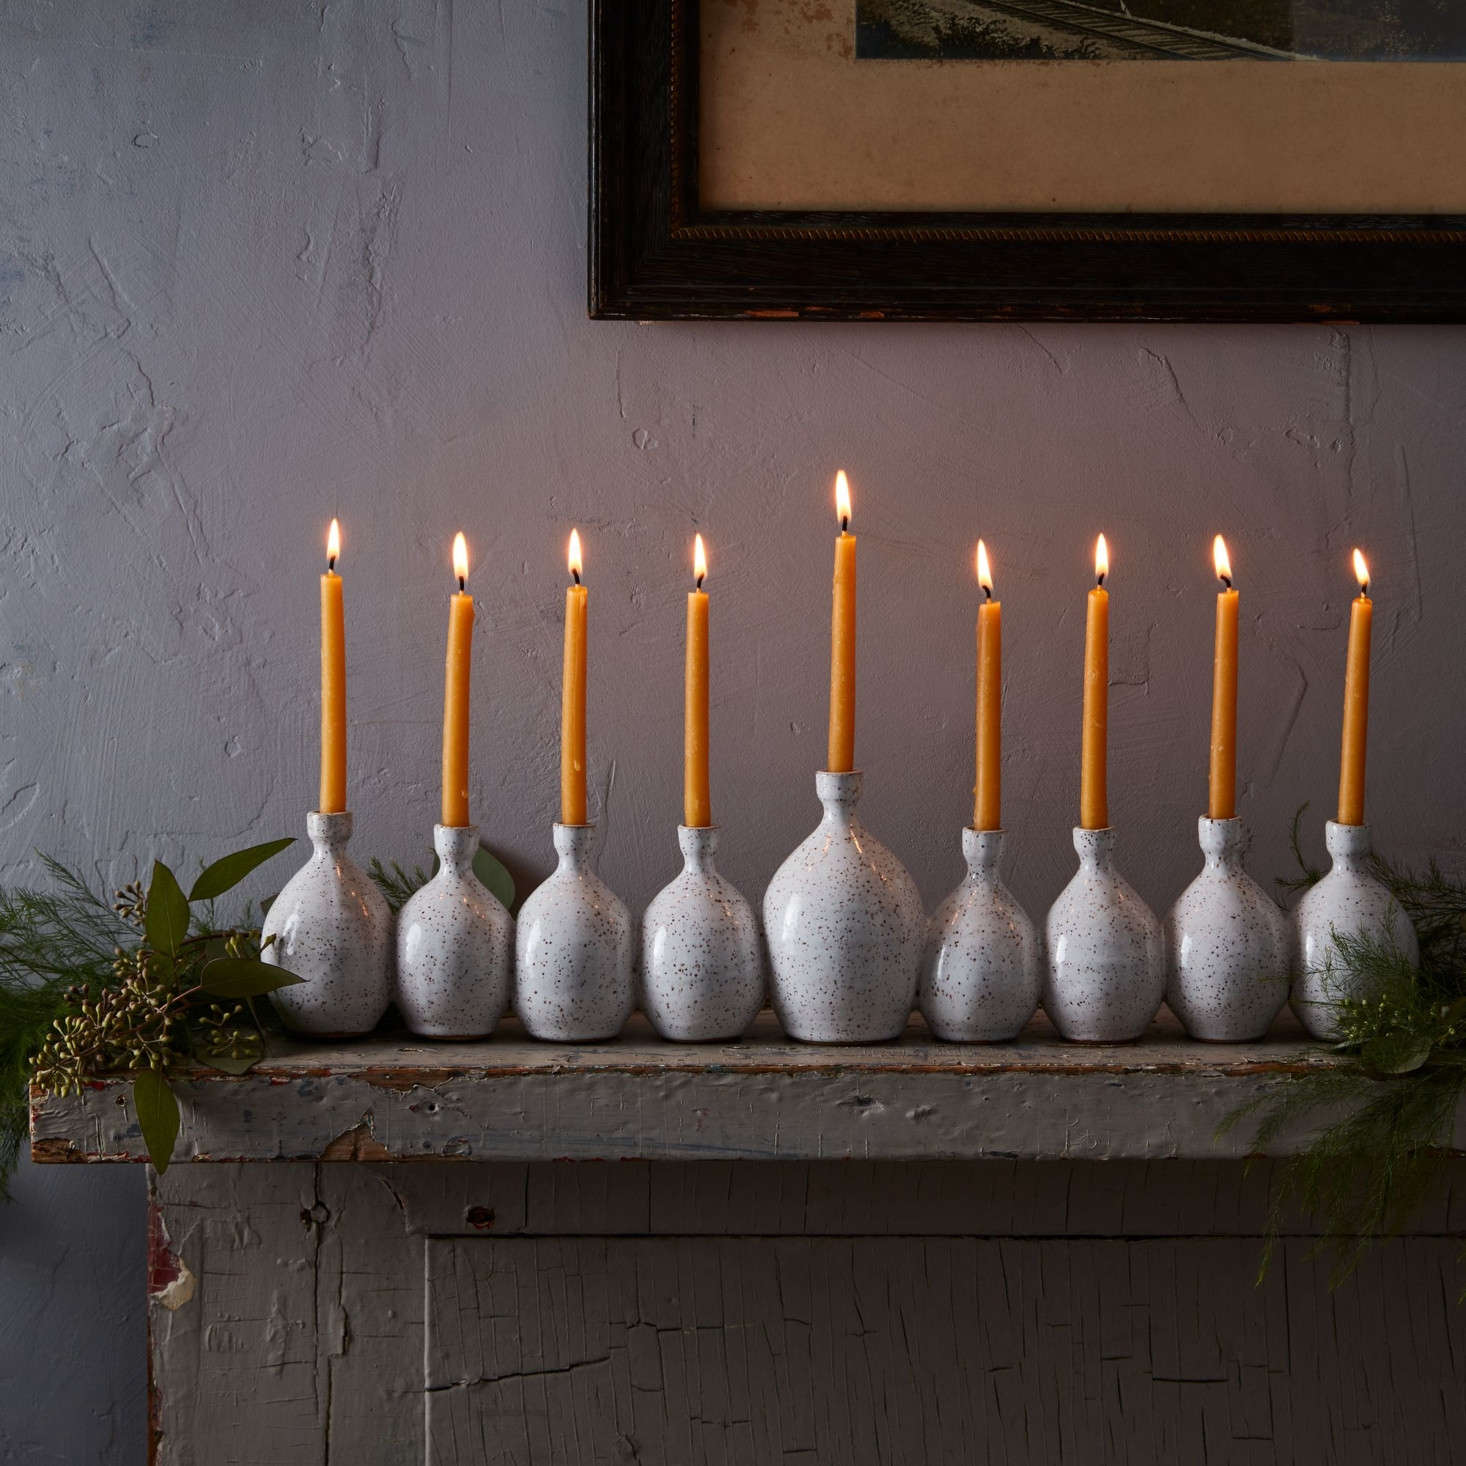 Brooklyn ceramic artist Rachel Pots attaches nine hand-thrown vases together to form her signature menorahs. &#8